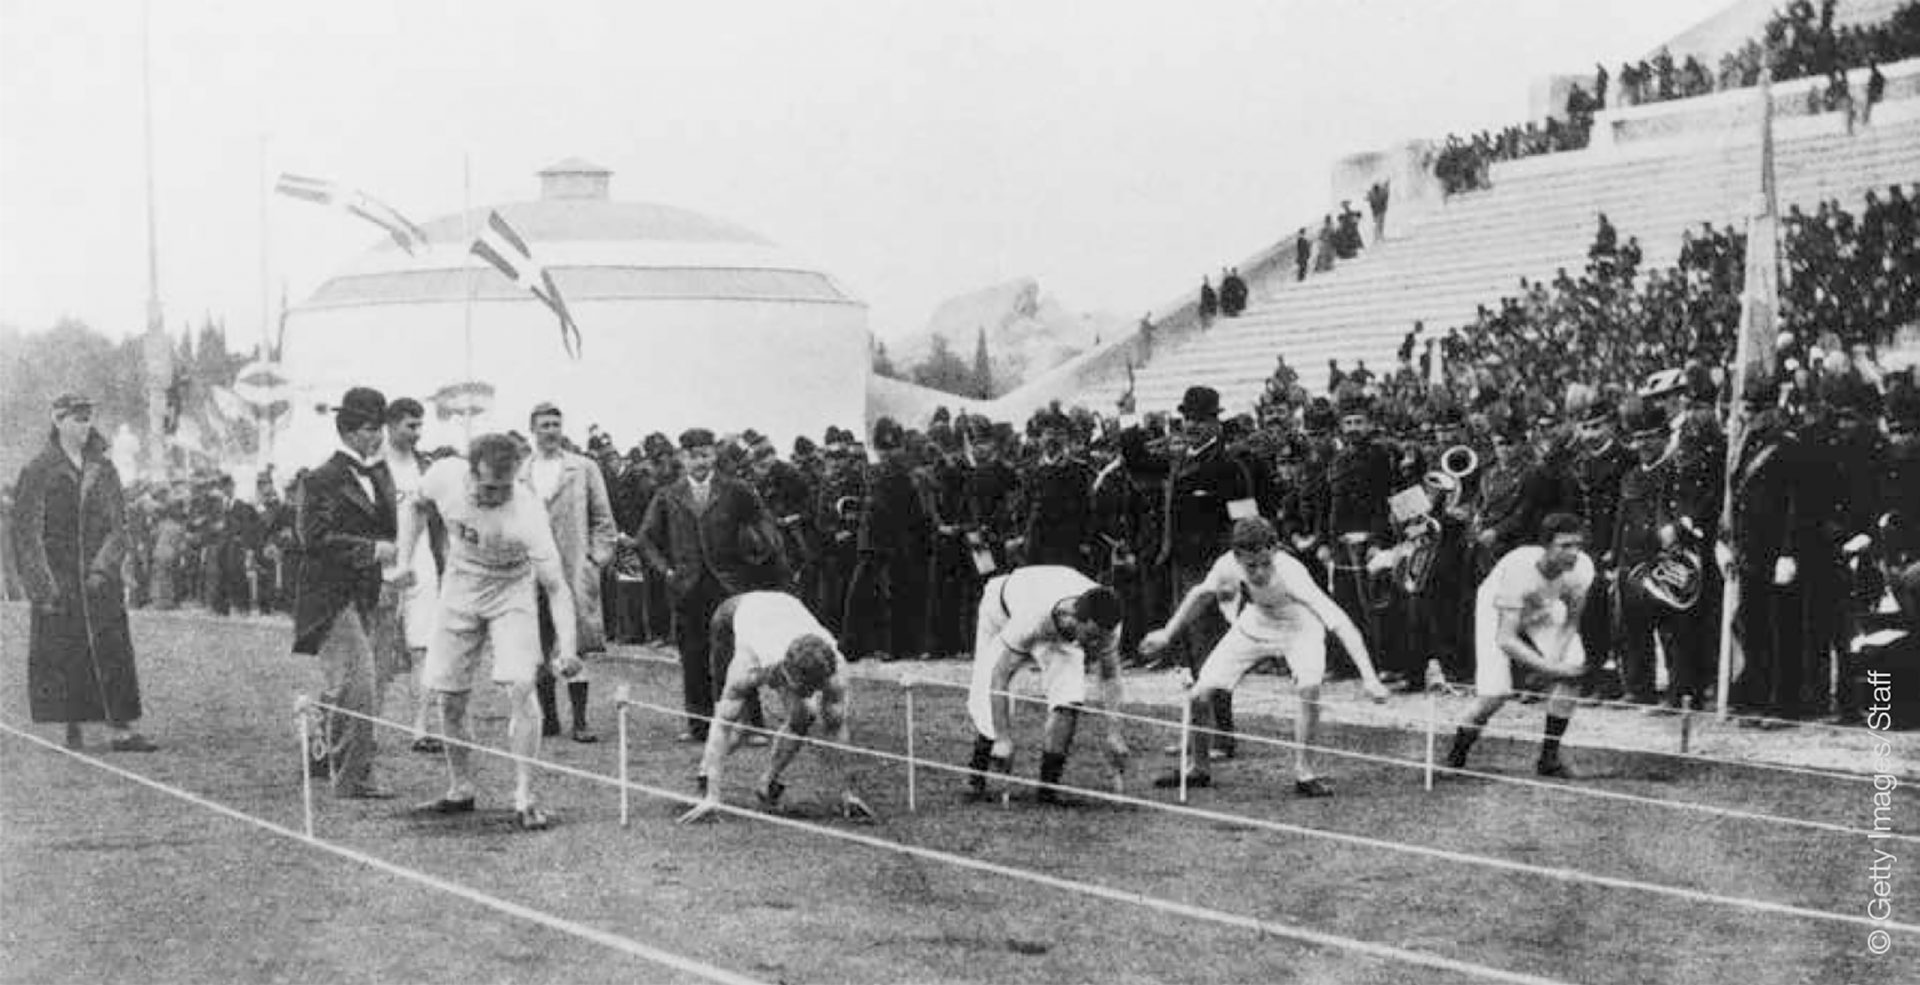 Runners in the 100-meter sprint at the first modern Olympic Games